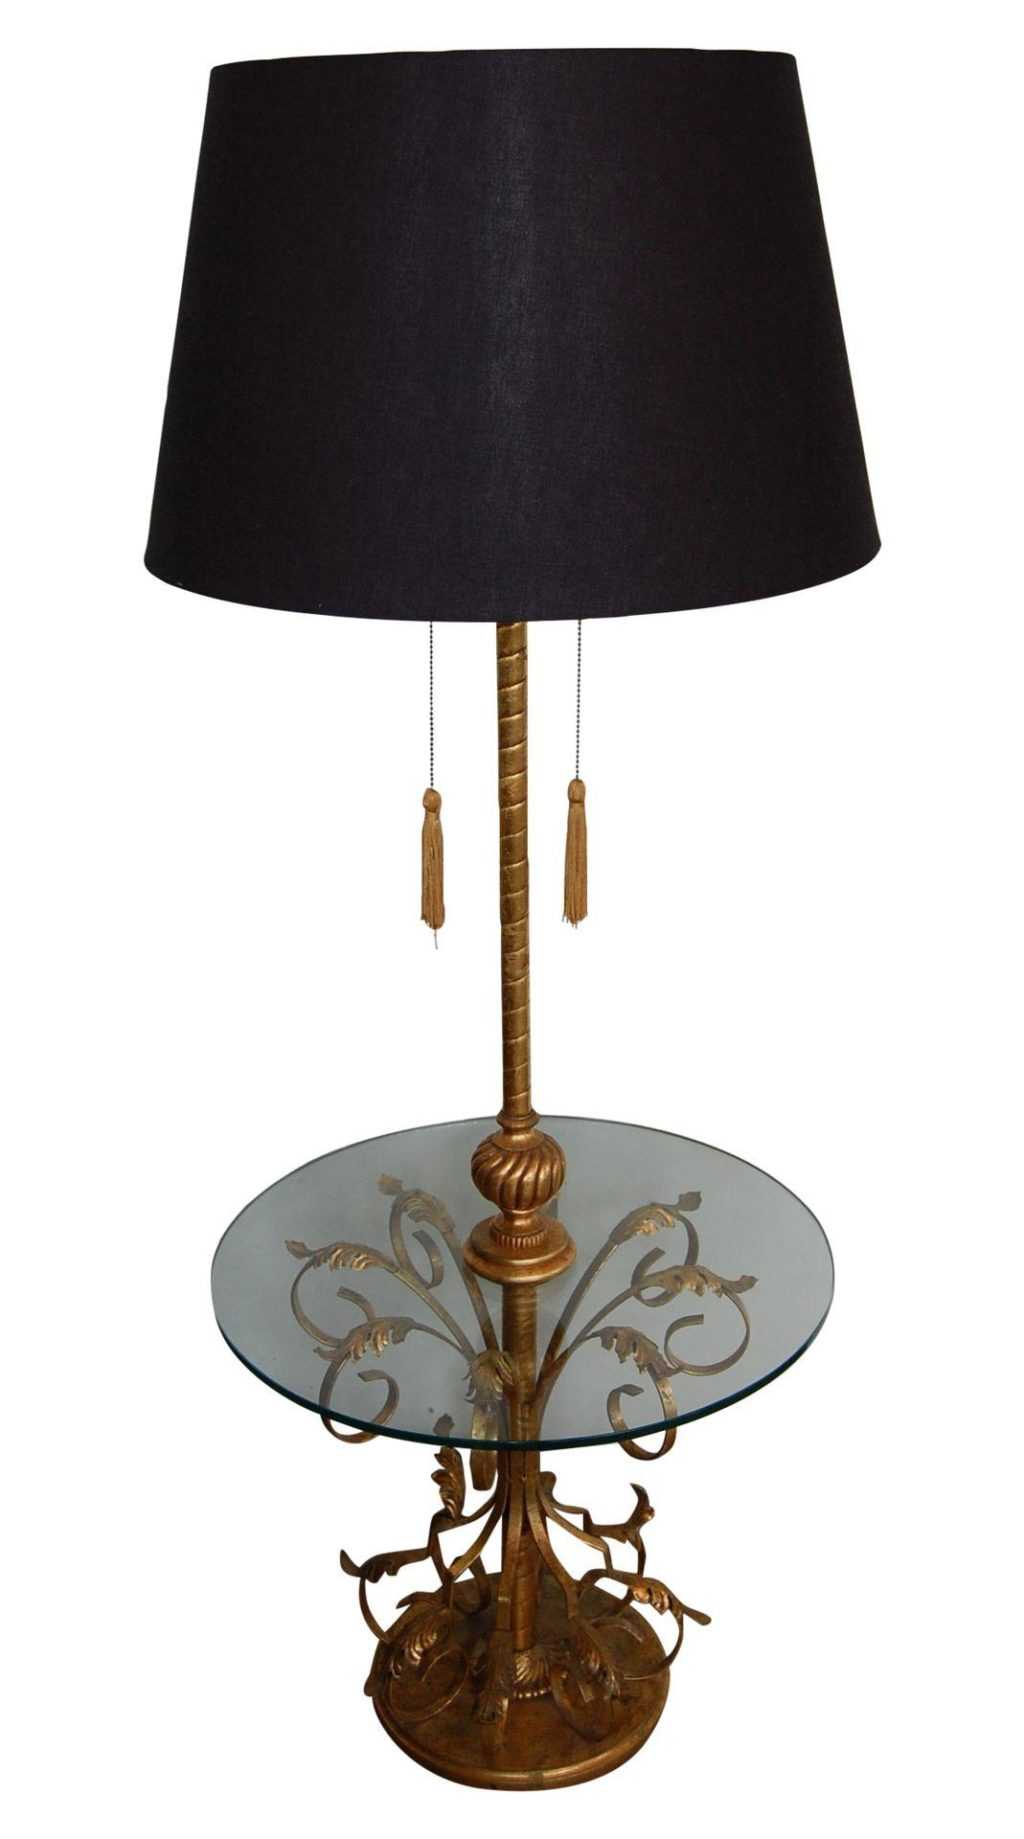 Vintage Regency Italian Tole Table Amp Floor Lamp The